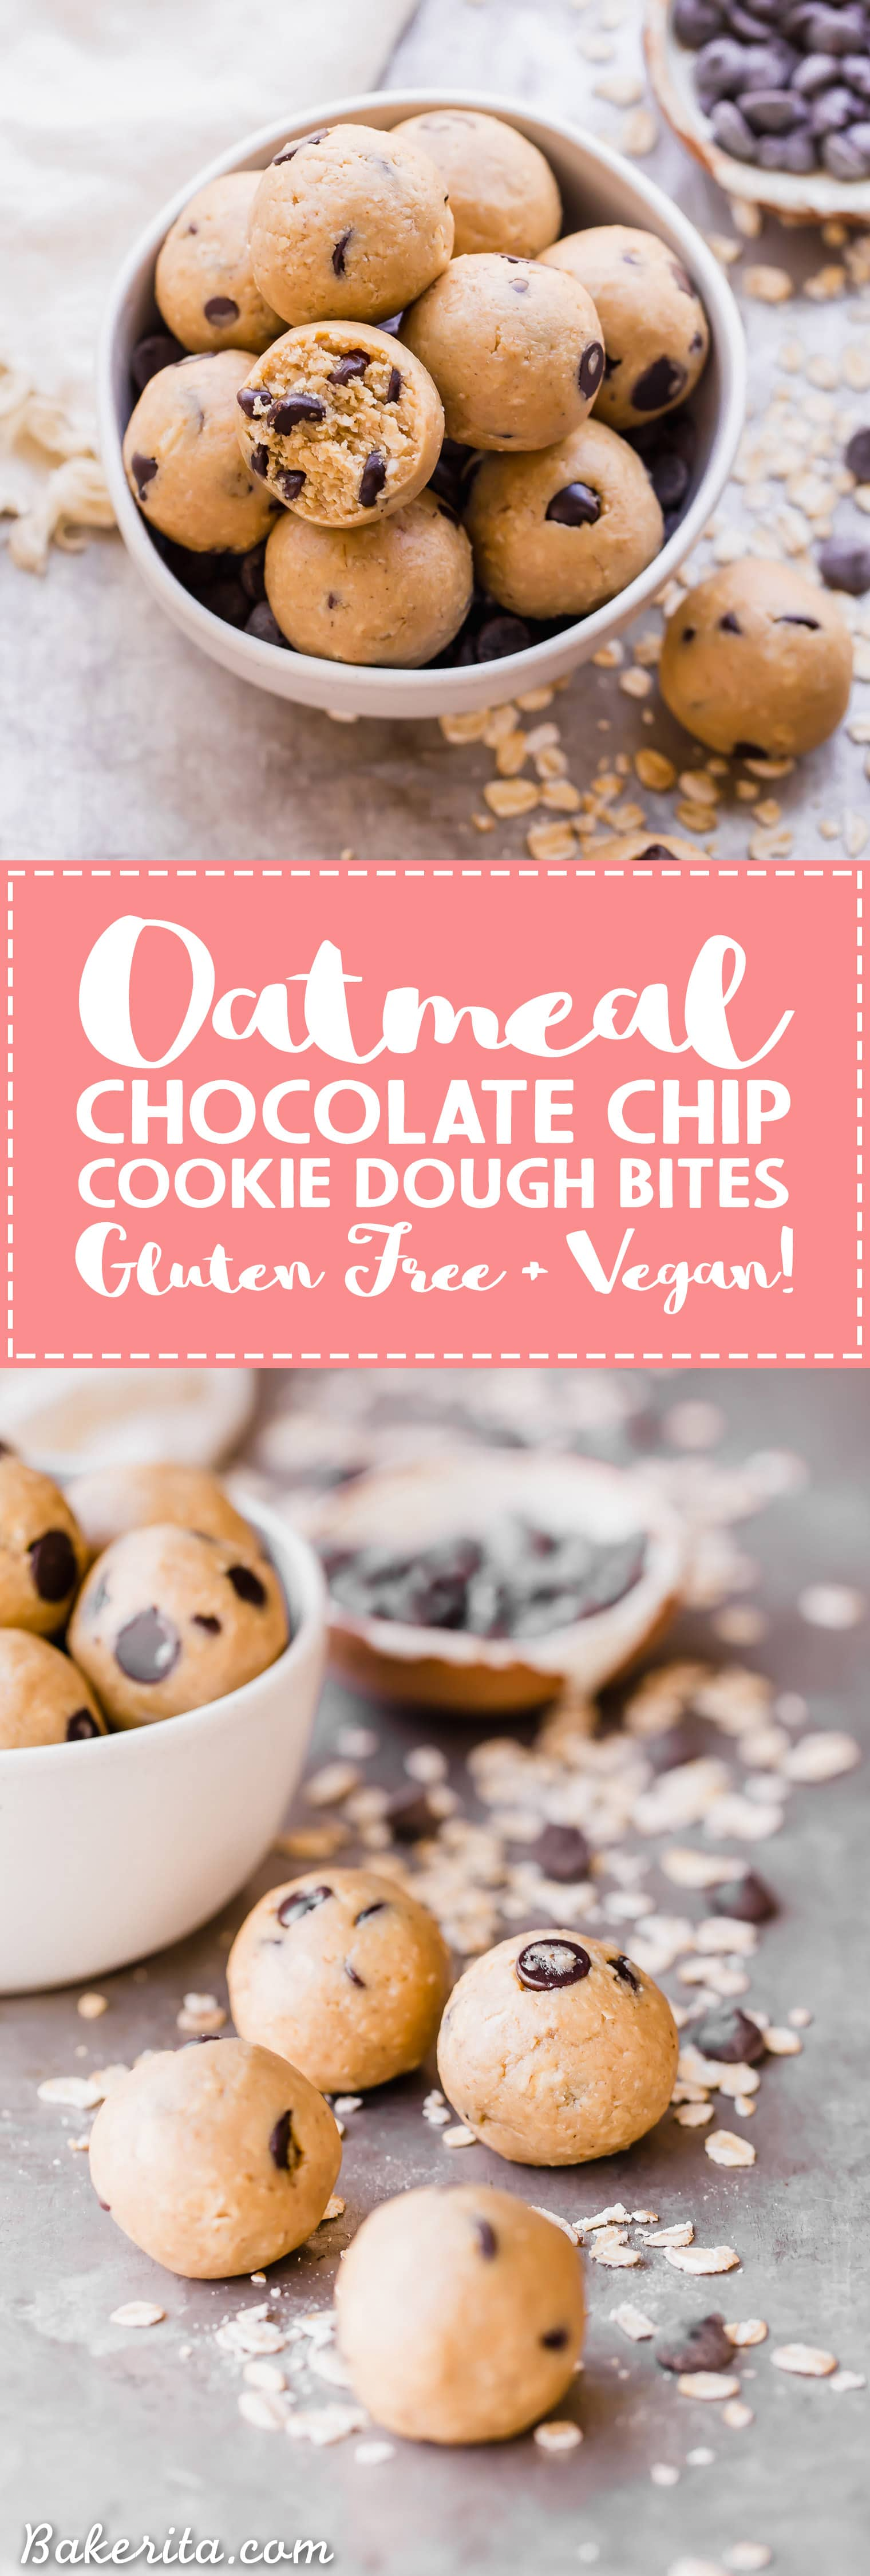 Oatmeal Chocolate Chip Cookie Dough Bites: Gluten Free & Vegan. Stacked in a bowl with oats and chocolate chips. Has text overlay.